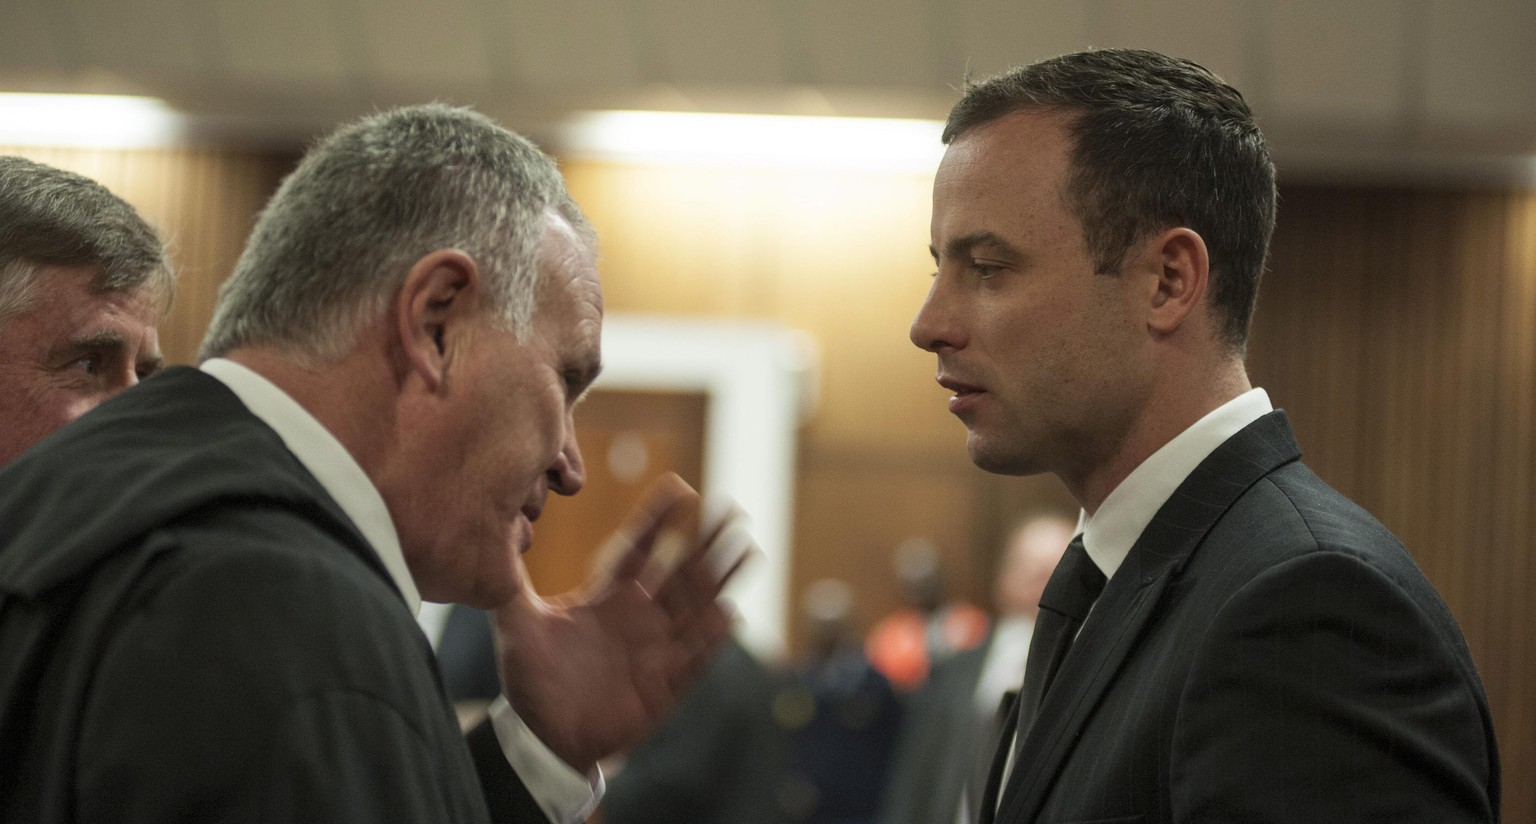 epa04291102 South African Paralympic athlete Oscar Pistorius (R) speaks with his defence lawyer Barry Roux (L) in the dock during his ongoing murder trial at a Court in Pretoria, South Africa, 30 June 2014. Pistorius stands trial for the premeditated murder of his model girlfriend Reeva Steenkamp in February 2013.  EPA/IHSAAN HAFFEJEE / POOL